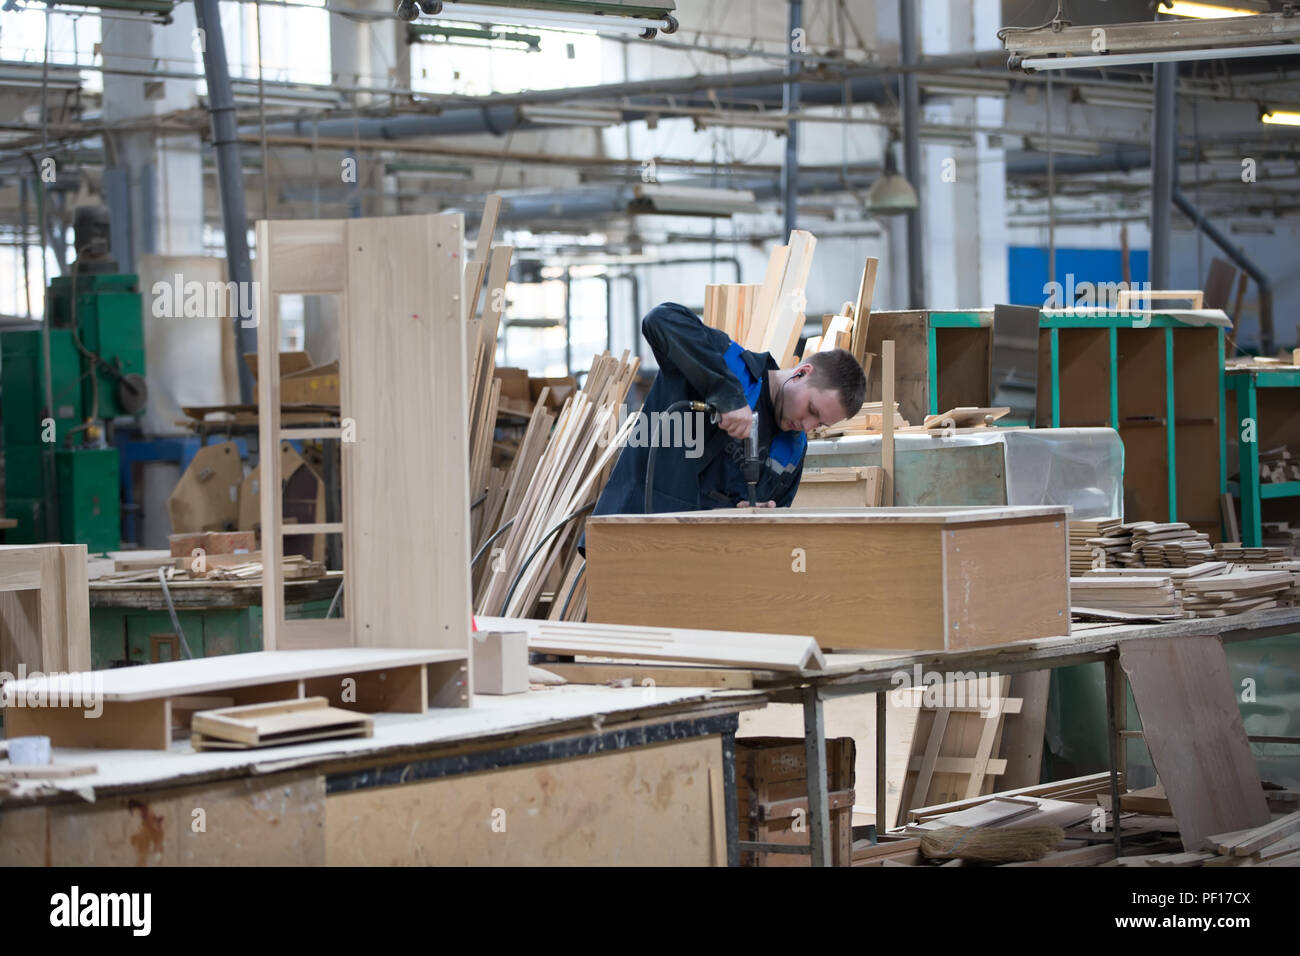 Belarus, The City Of Gomel, On April 26, 2018. Furniture Factory.